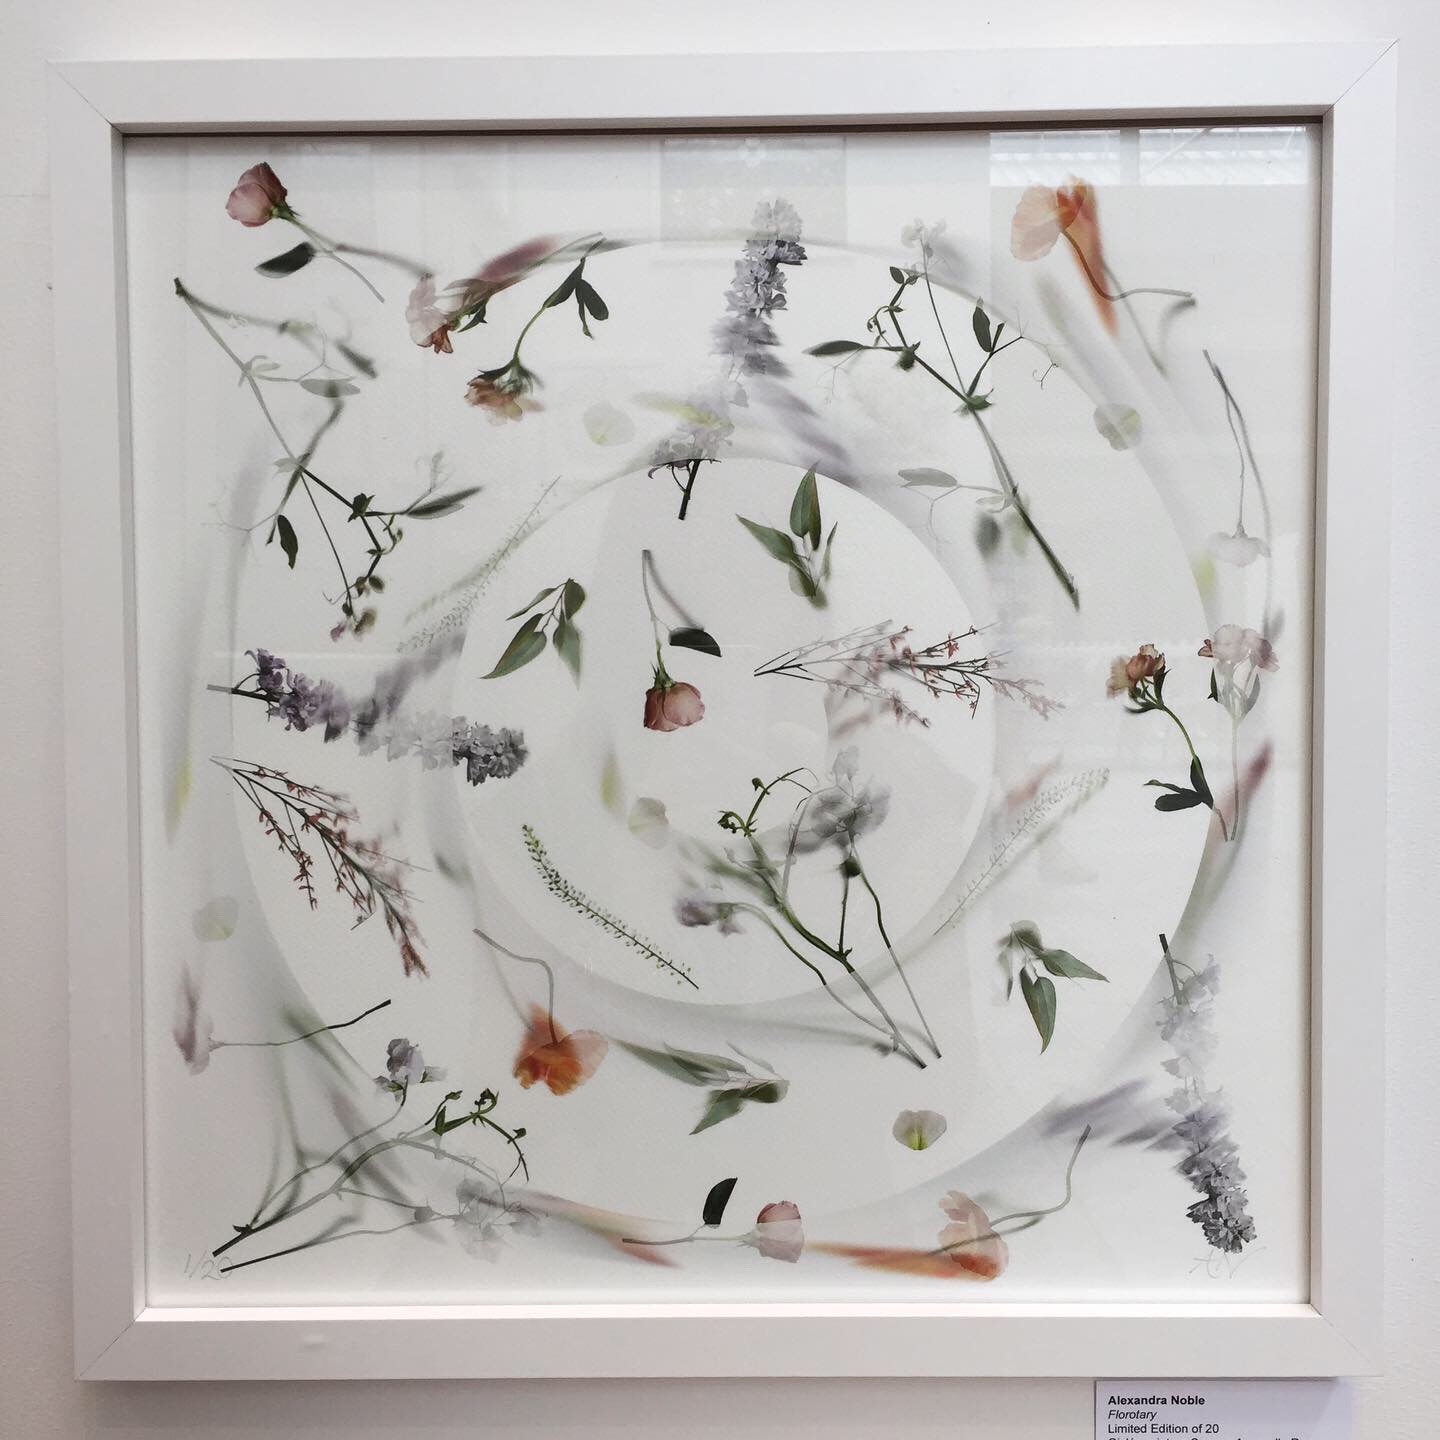 Florotary   Limited Edition of 20  Giclée print on Canson Aquarelle Rag  40 x 40 cm (unframed)   £200.00